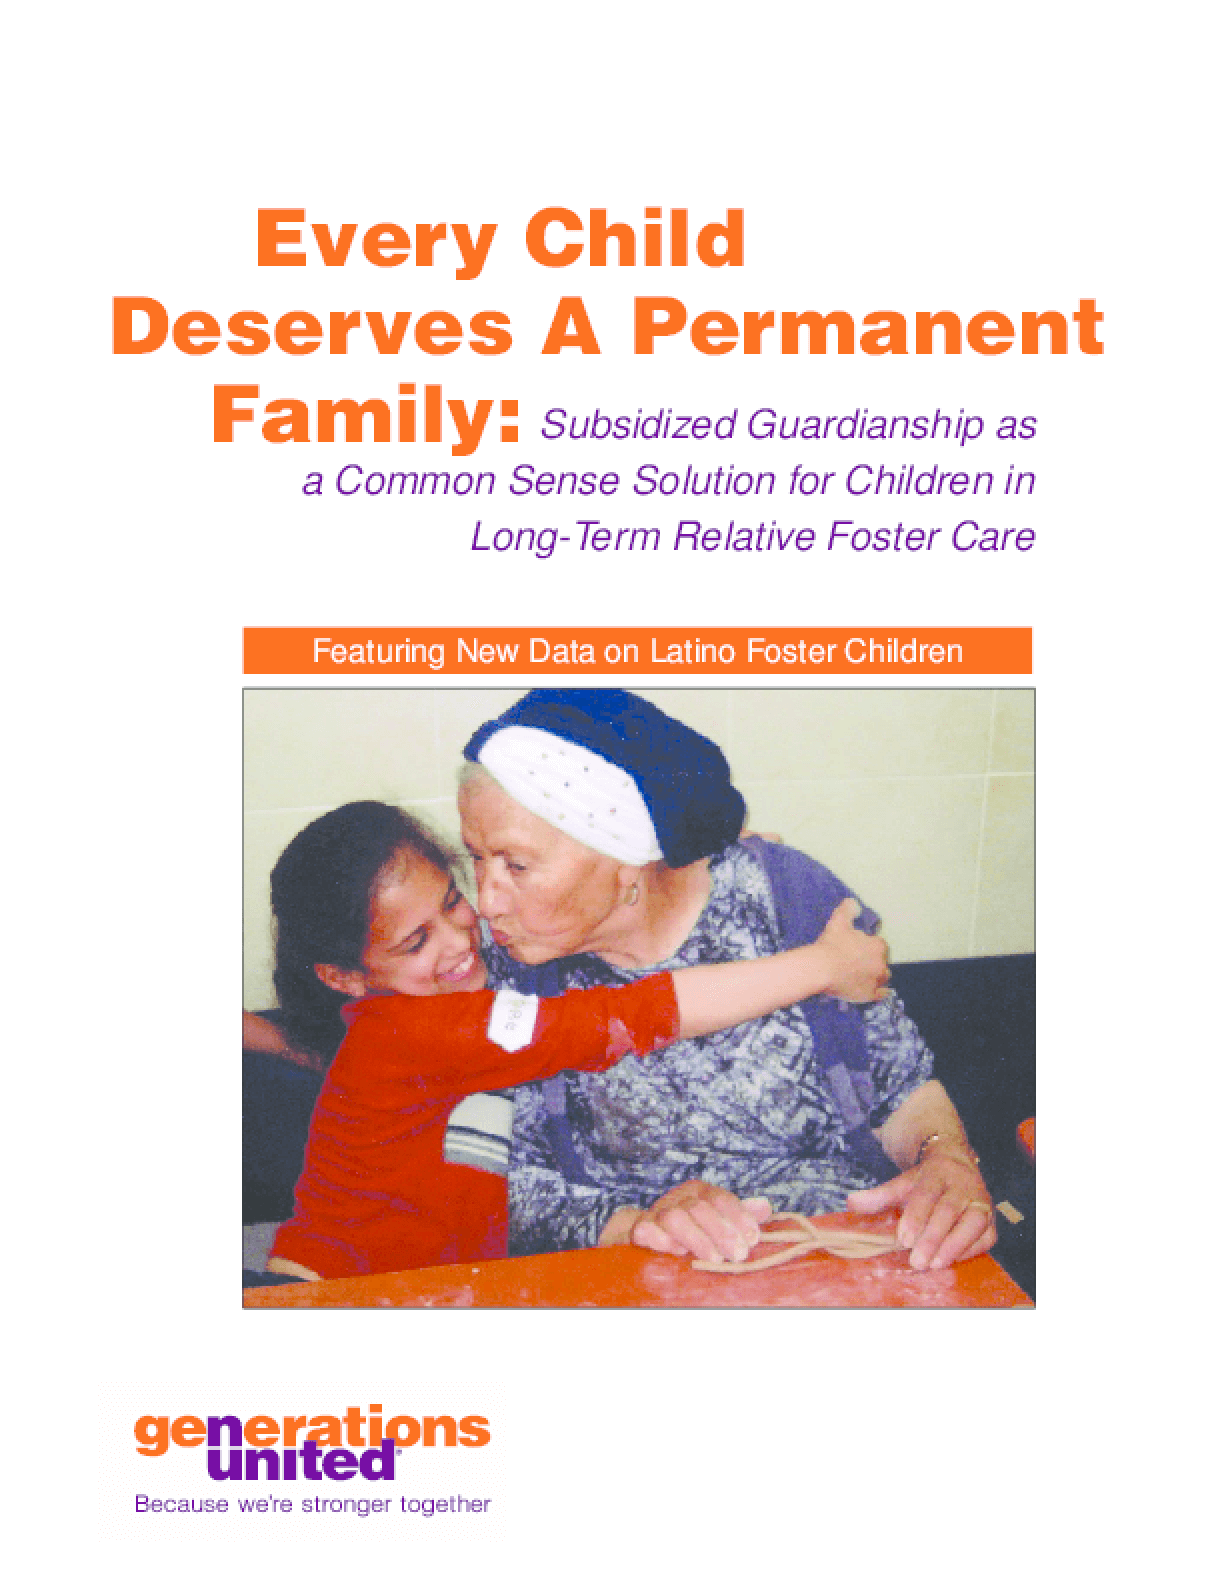 All Children Deserve A Permanent Home: Subsidized Guardianships as a Common Sense Solution for Children in Long-Term Relative Foster Care